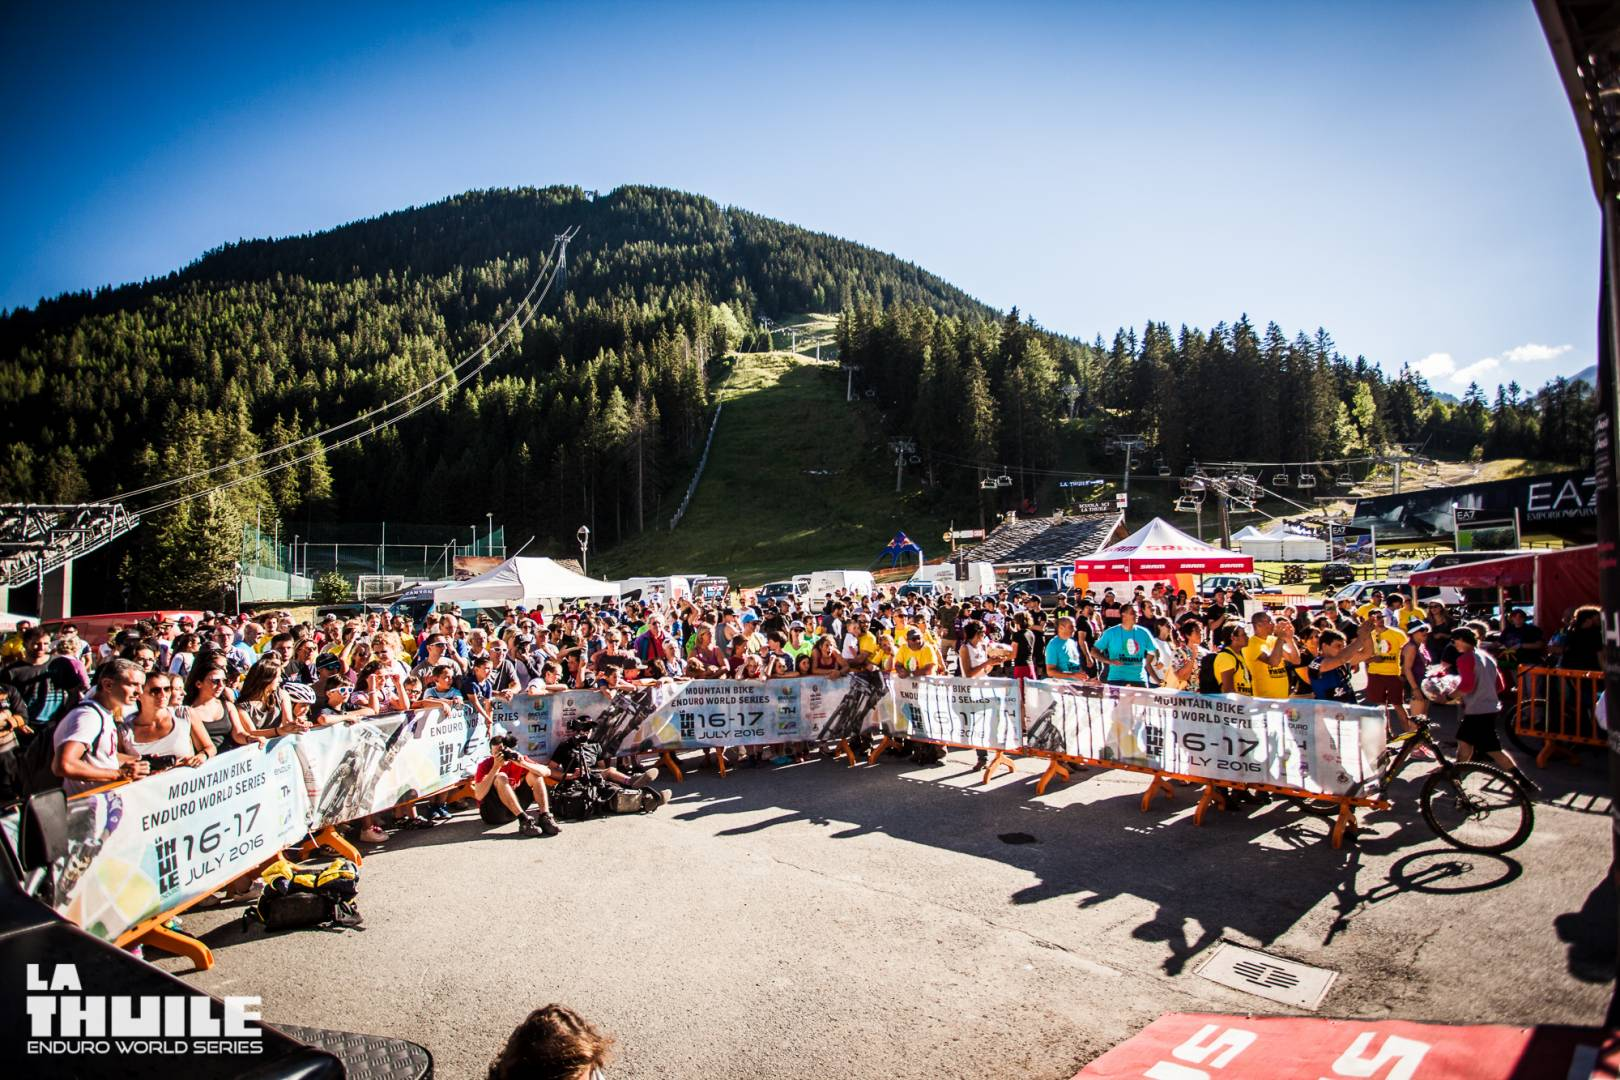 enduro world series la thuile mtb valle d'aosta italy